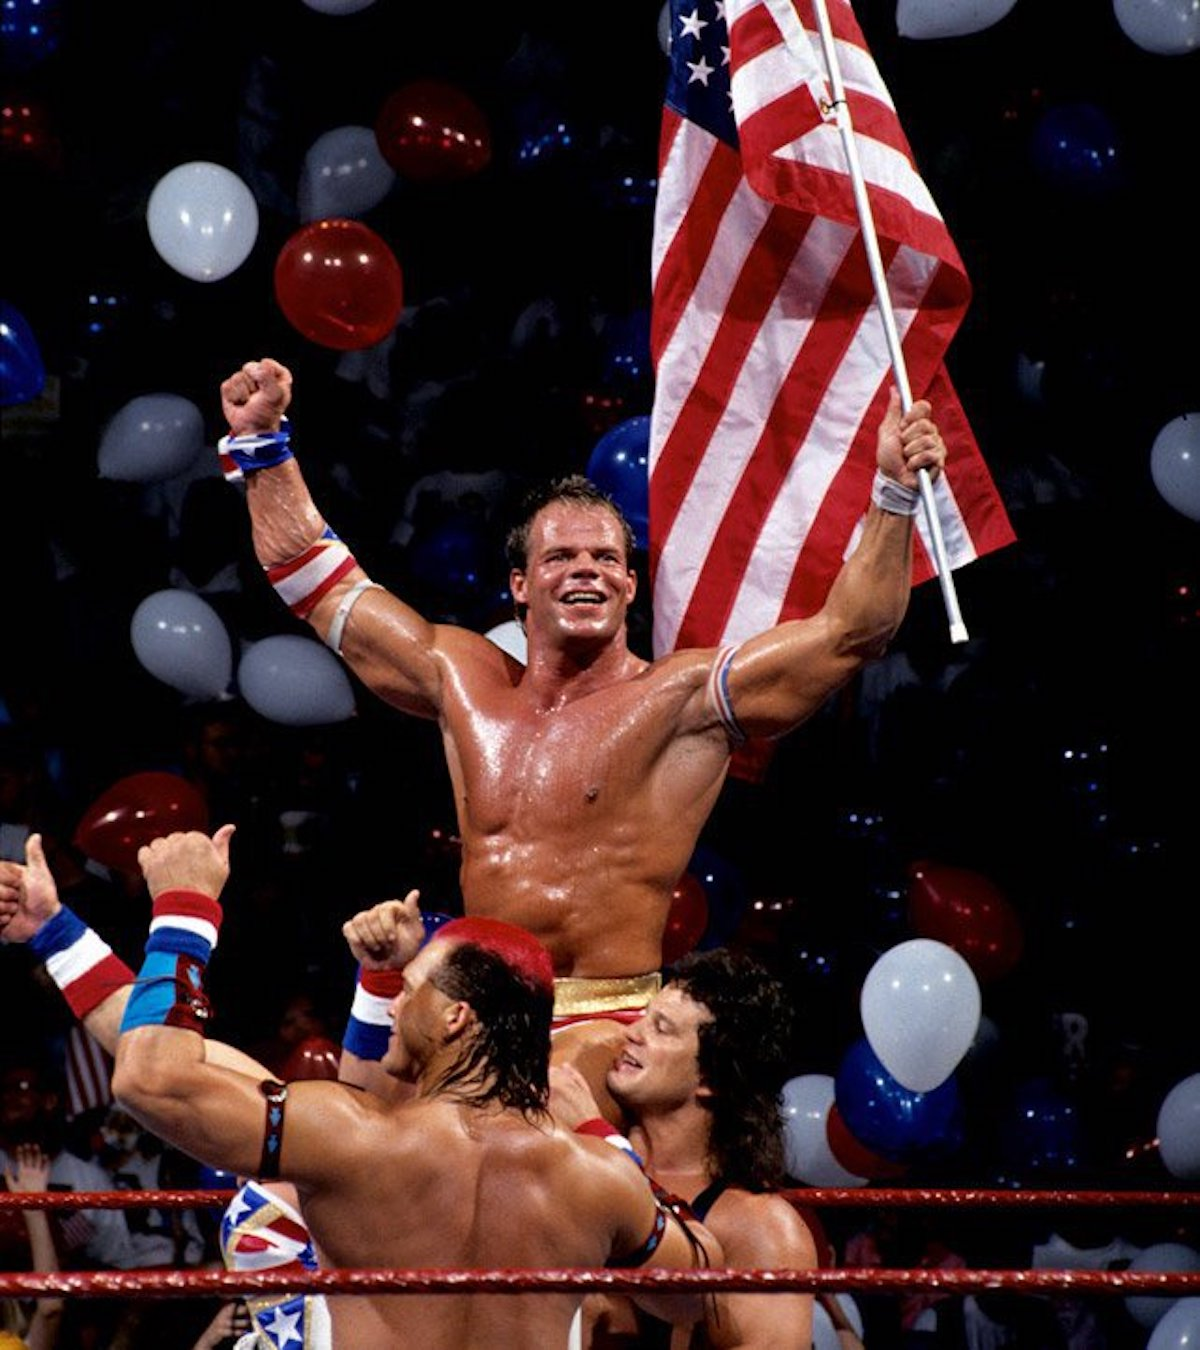 Lex Luger celebrates his countout victory over Yokozuna alongside fan favorites Tatanka and Scott Steiner at SummerSlam '93.